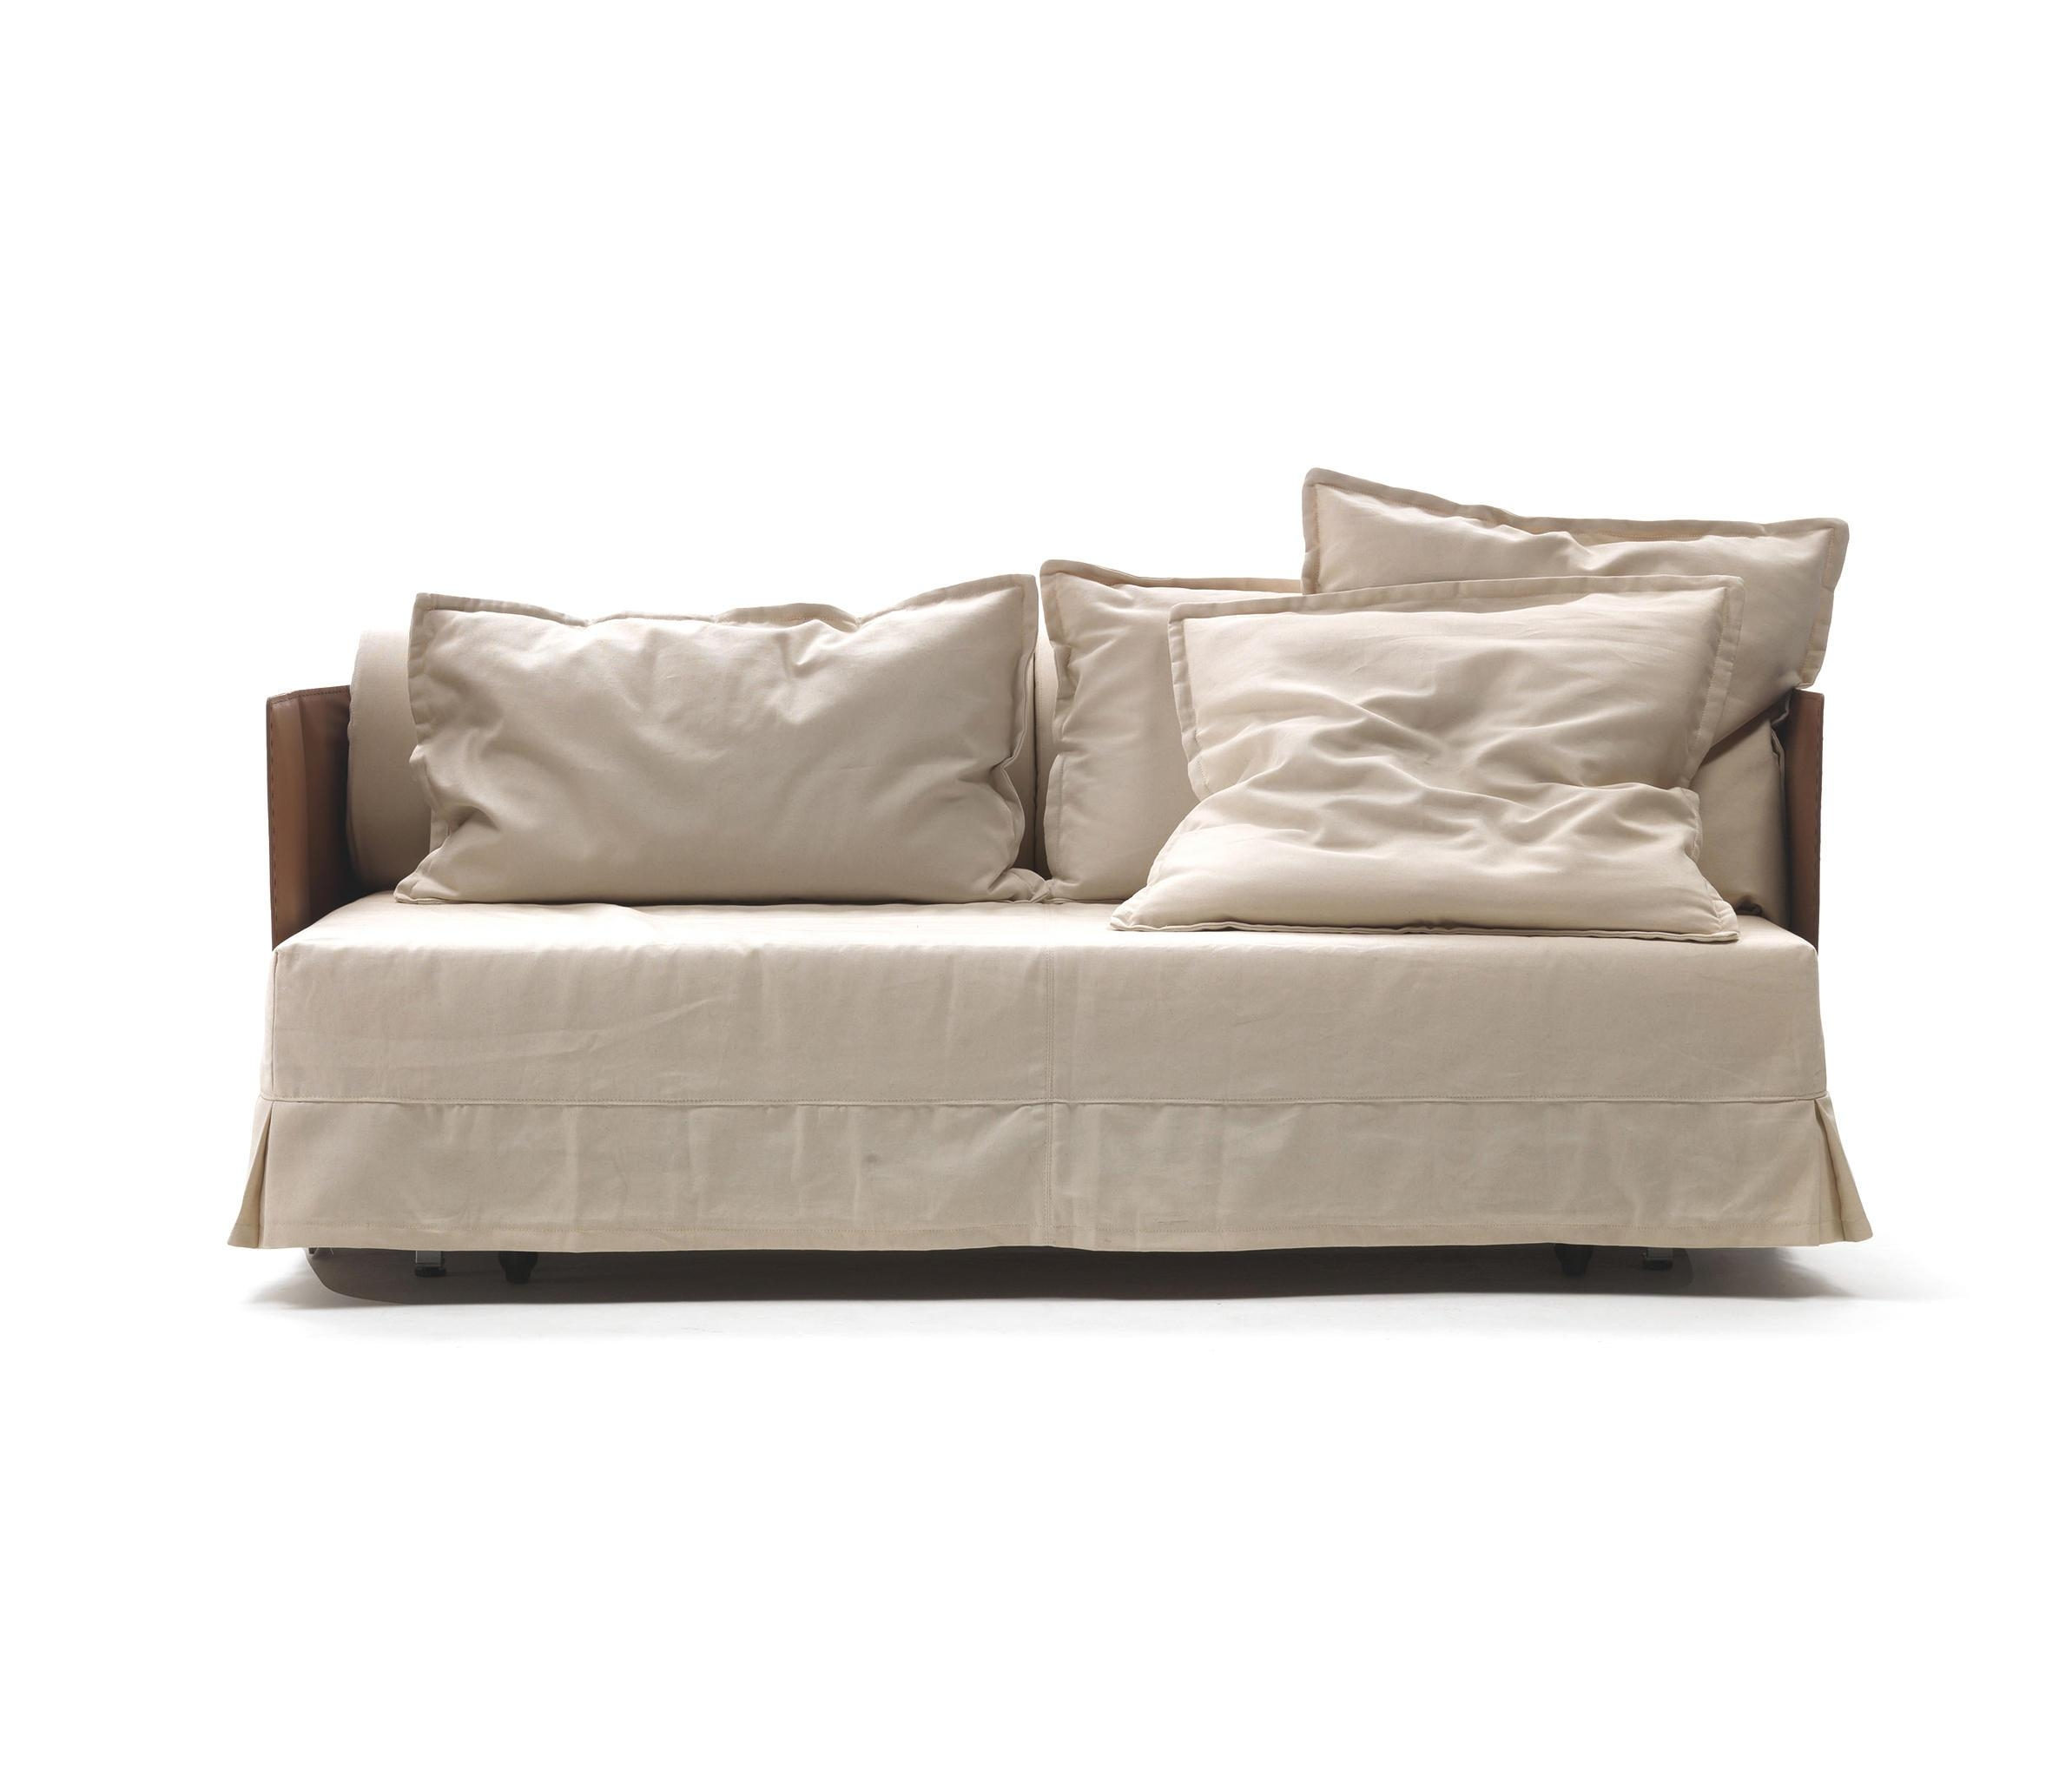 Eden – Sofa Beds From Flexform | Architonic Within Flexform Sofas (View 18 of 20)